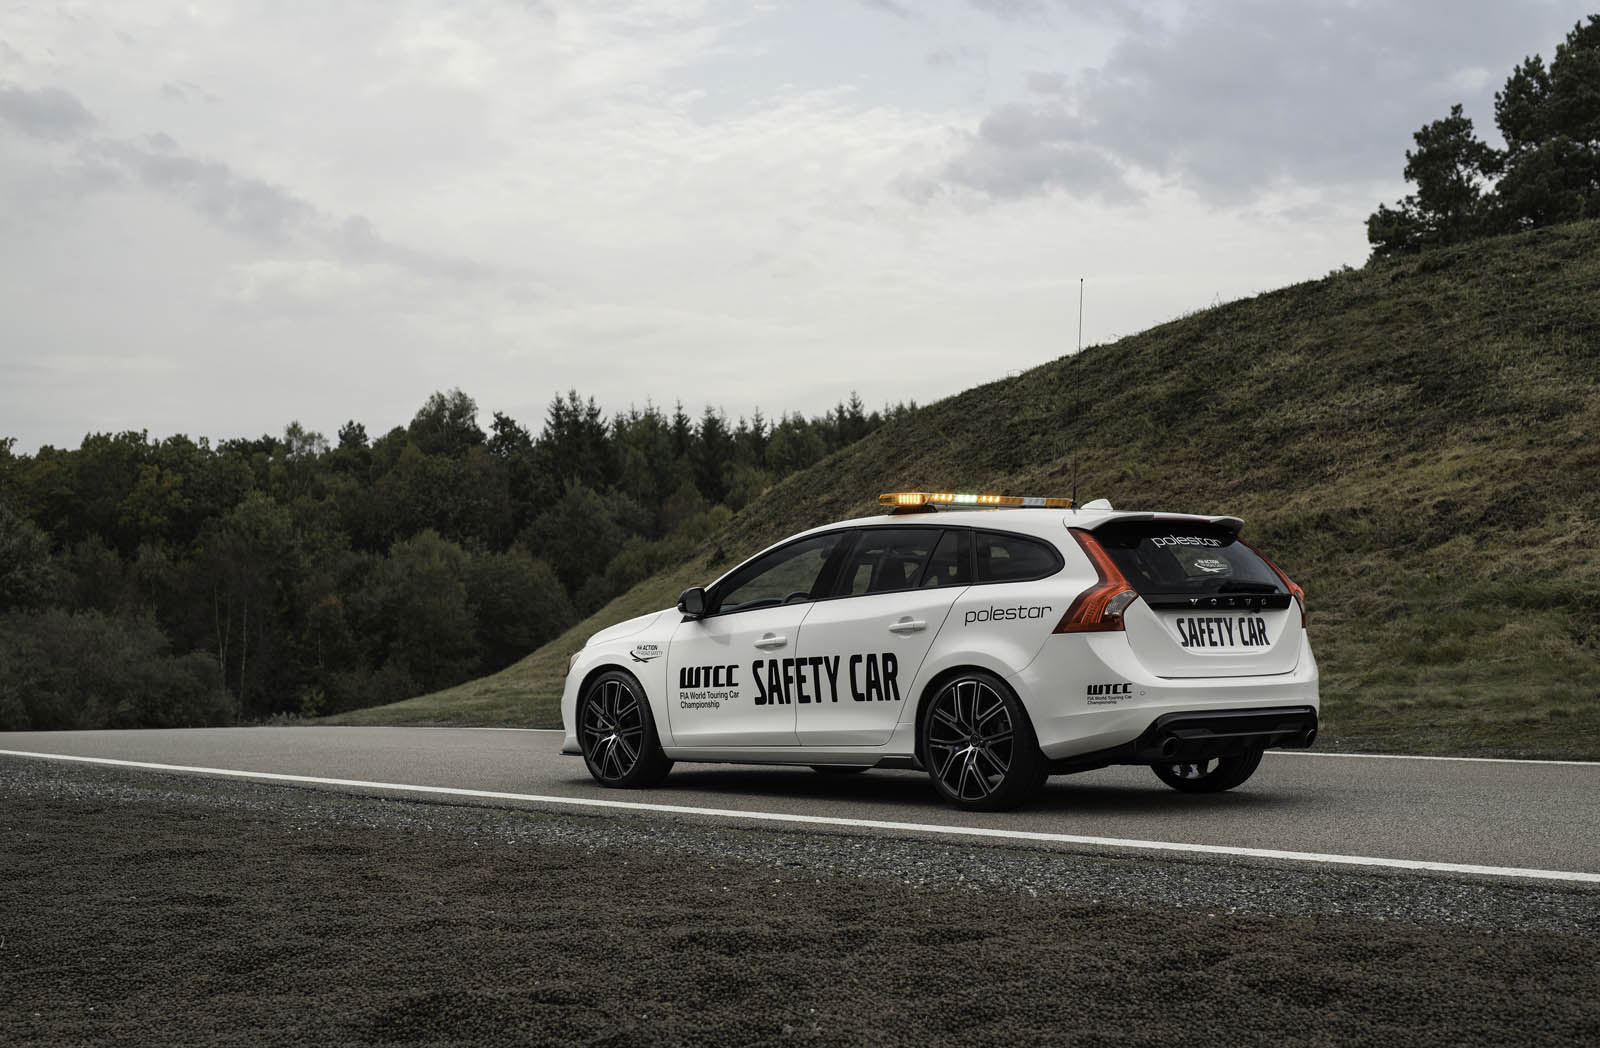 check out this gorgeous 2018 volvo v60 polestar safety car